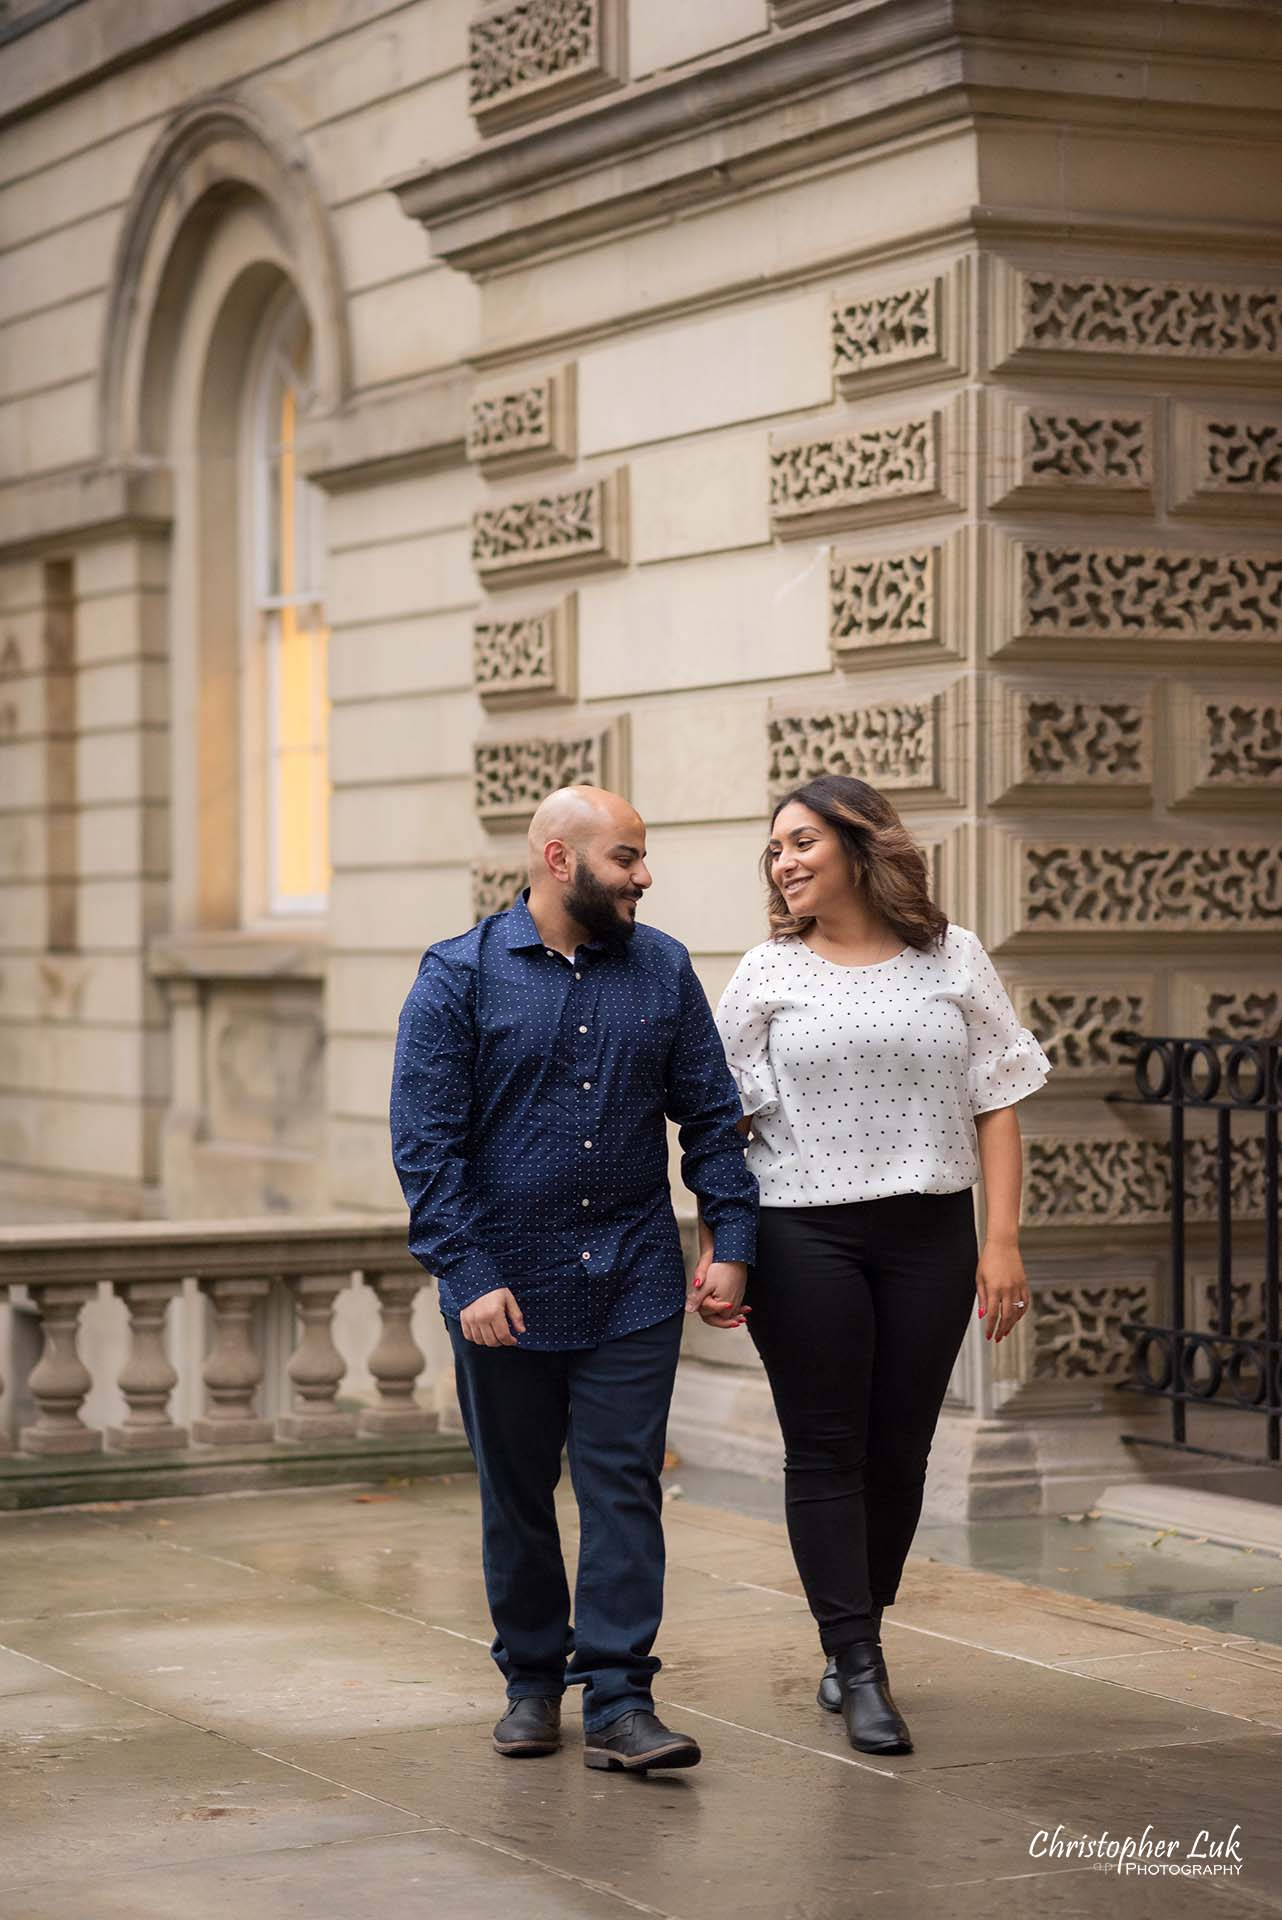 Christopher Luk Toronto Wedding Photographer - Toronto Osgoode Hall Surprise Proposal Engaged Engagement Will You Marry Me She Said Yes Natural Candid Photojournalistic - Fiancé Fiancée Bride Groom Walking